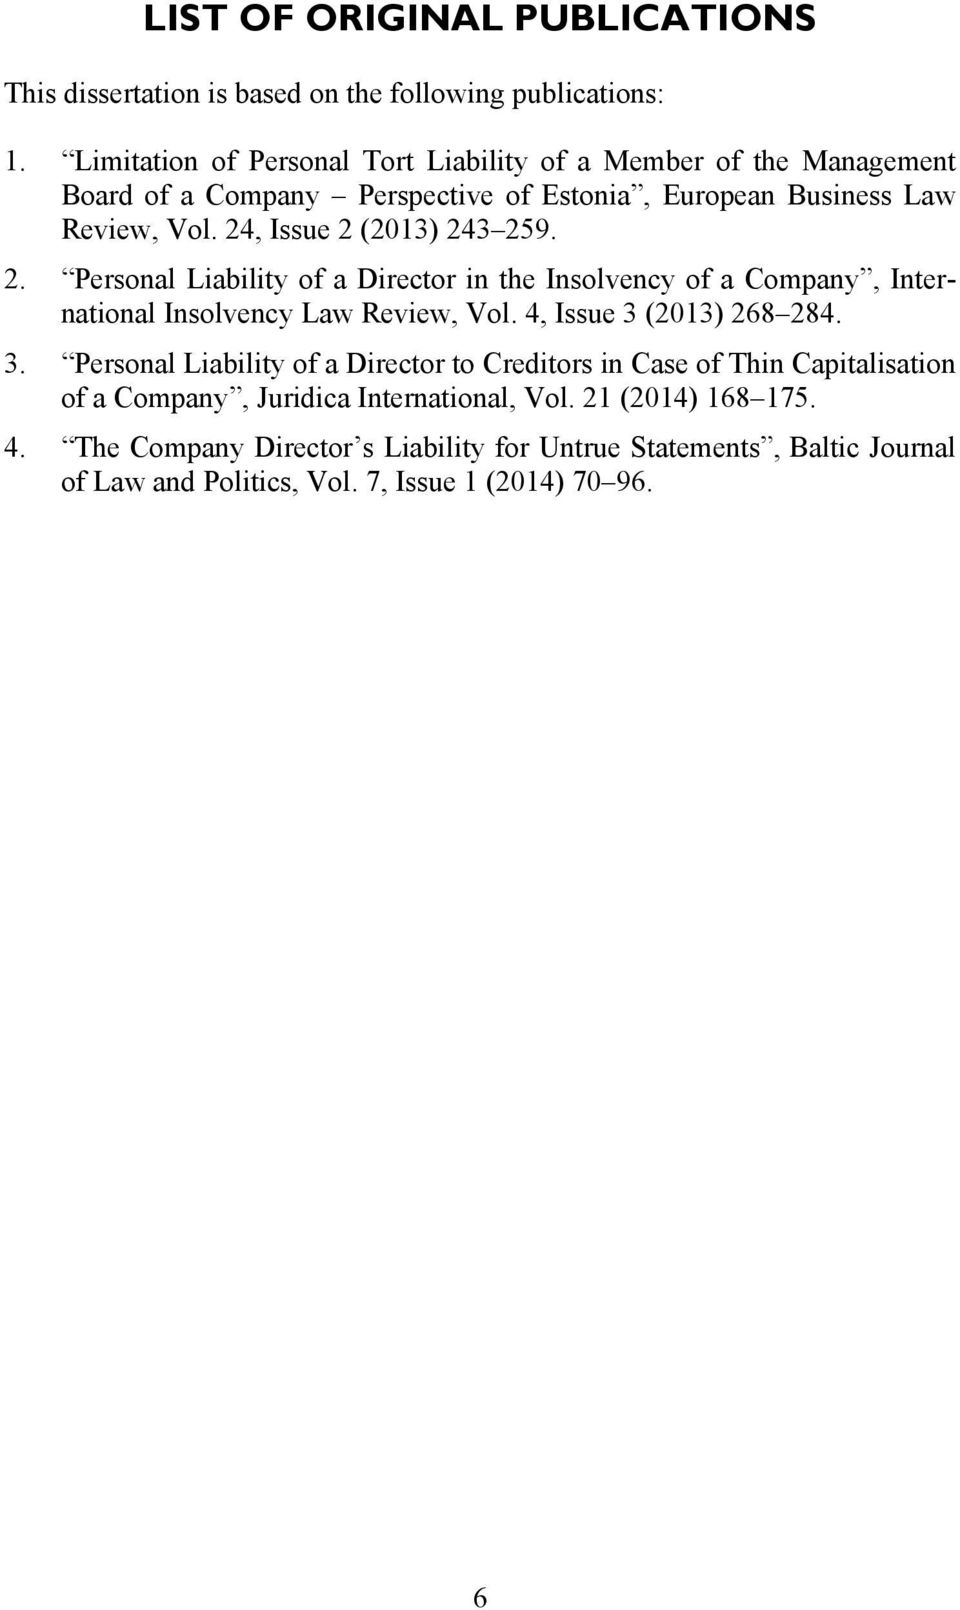 24, Issue 2 (2013) 243 259. 2. Personal Liability of a Director in the Insolvency of a Company, International Insolvency Law Review, Vol. 4, Issue 3